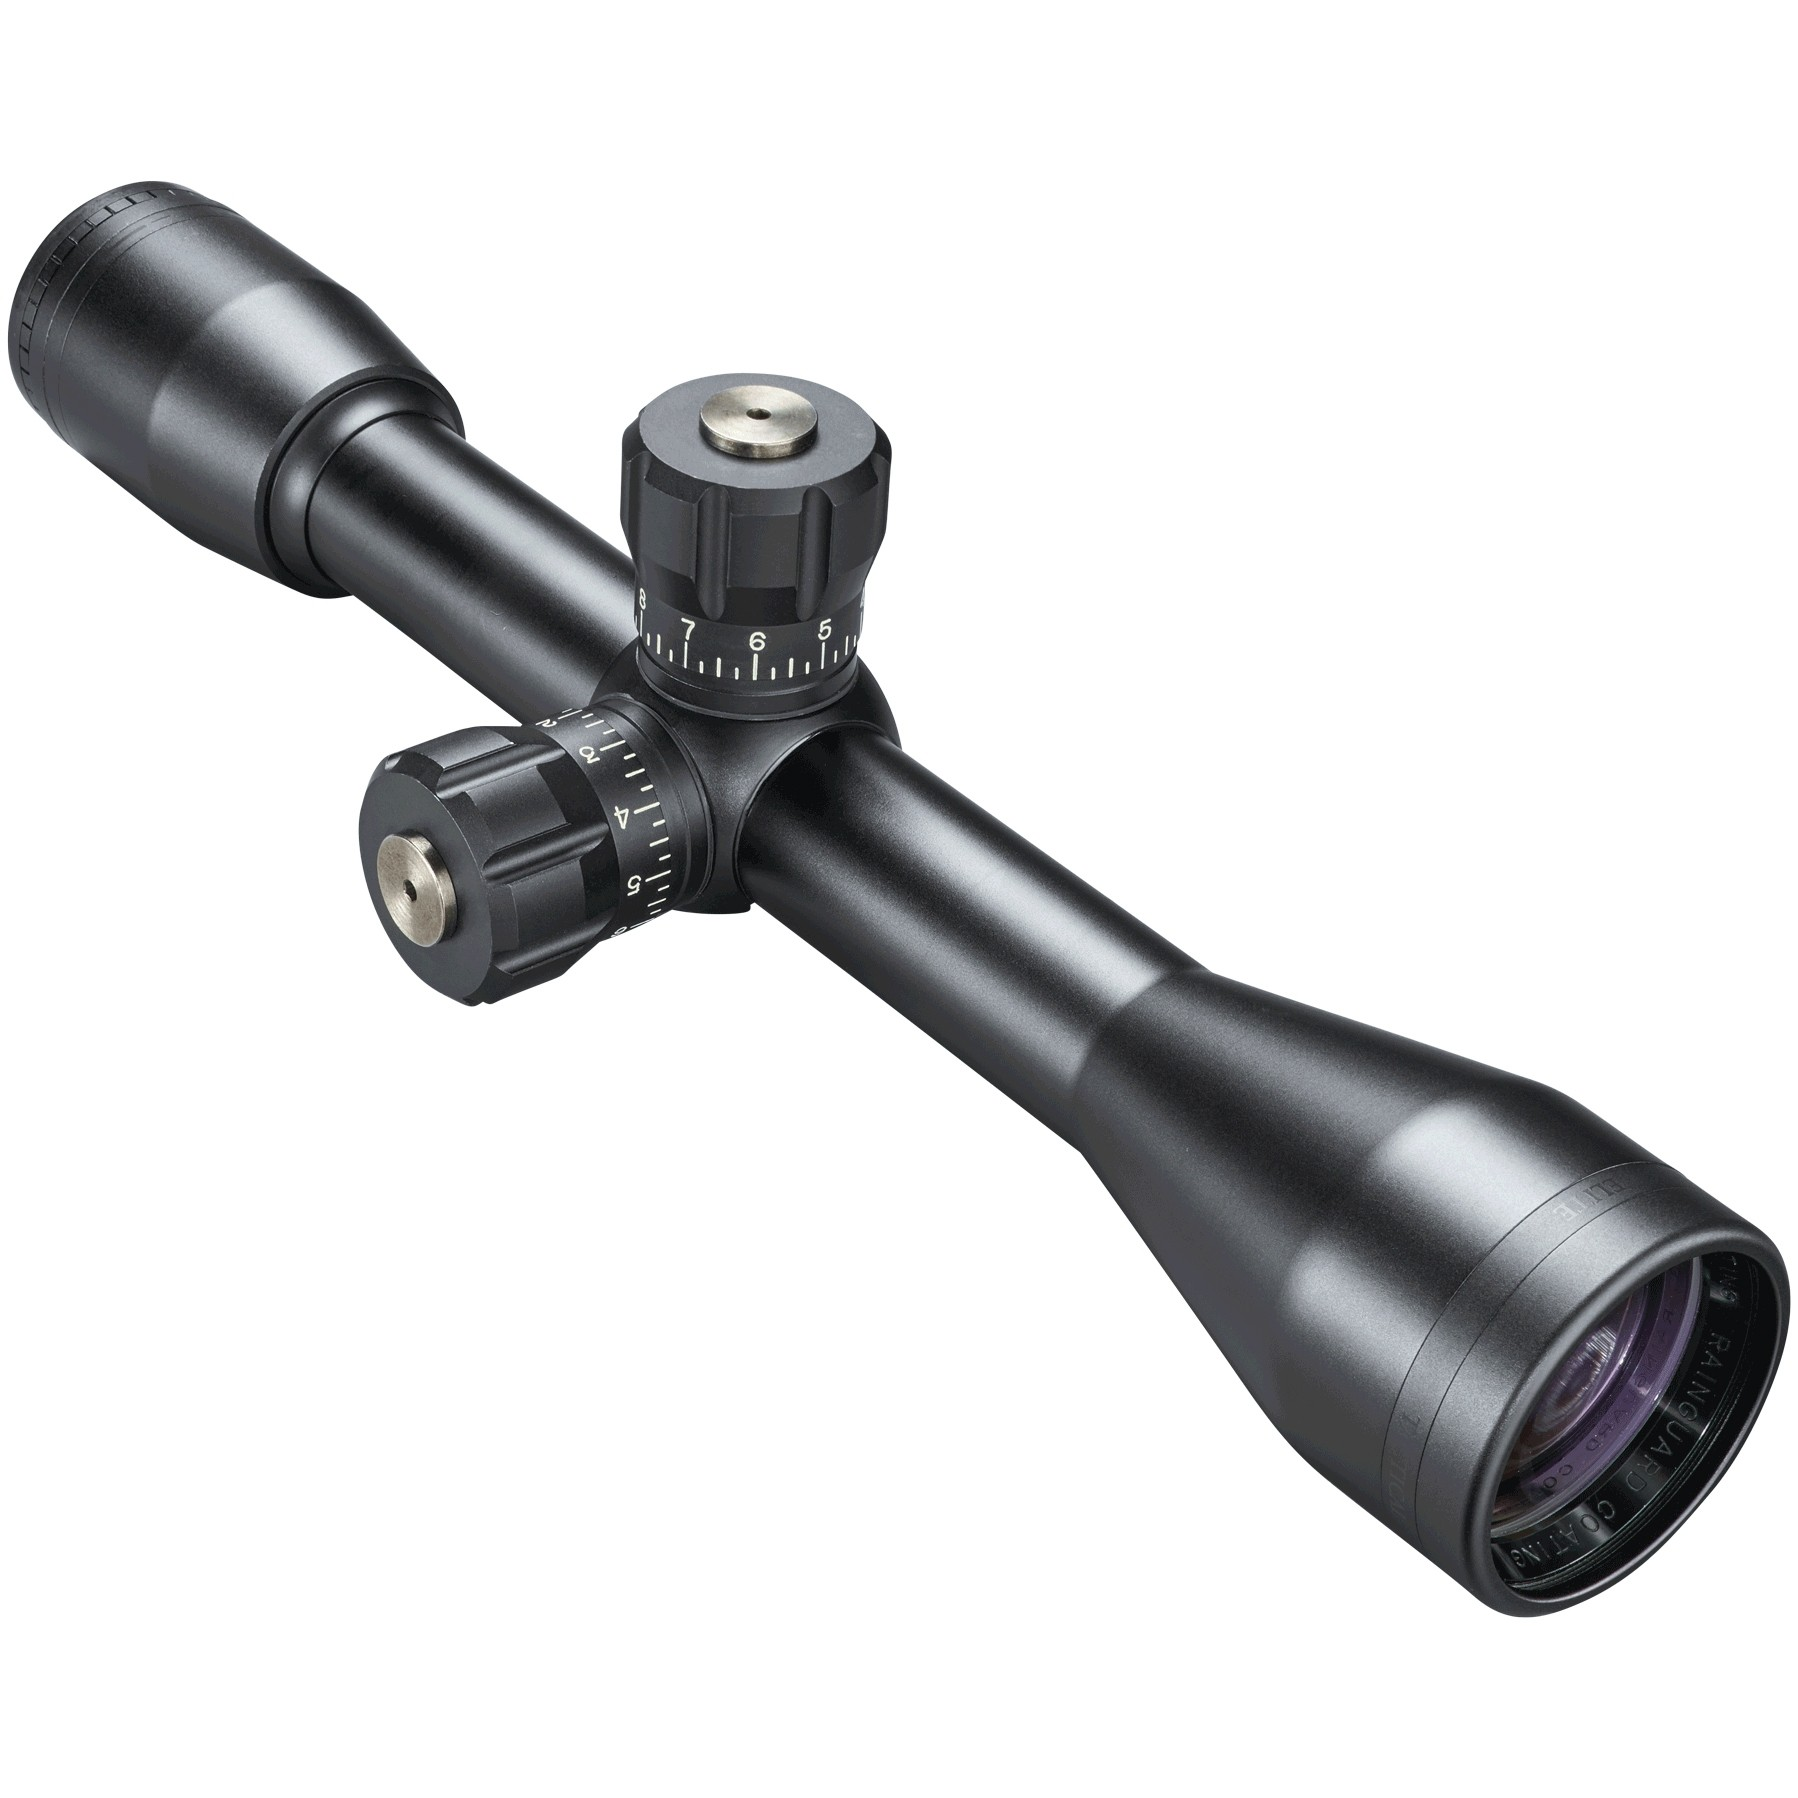 Bushnell 10x40 Tac Optics Rifle Scope